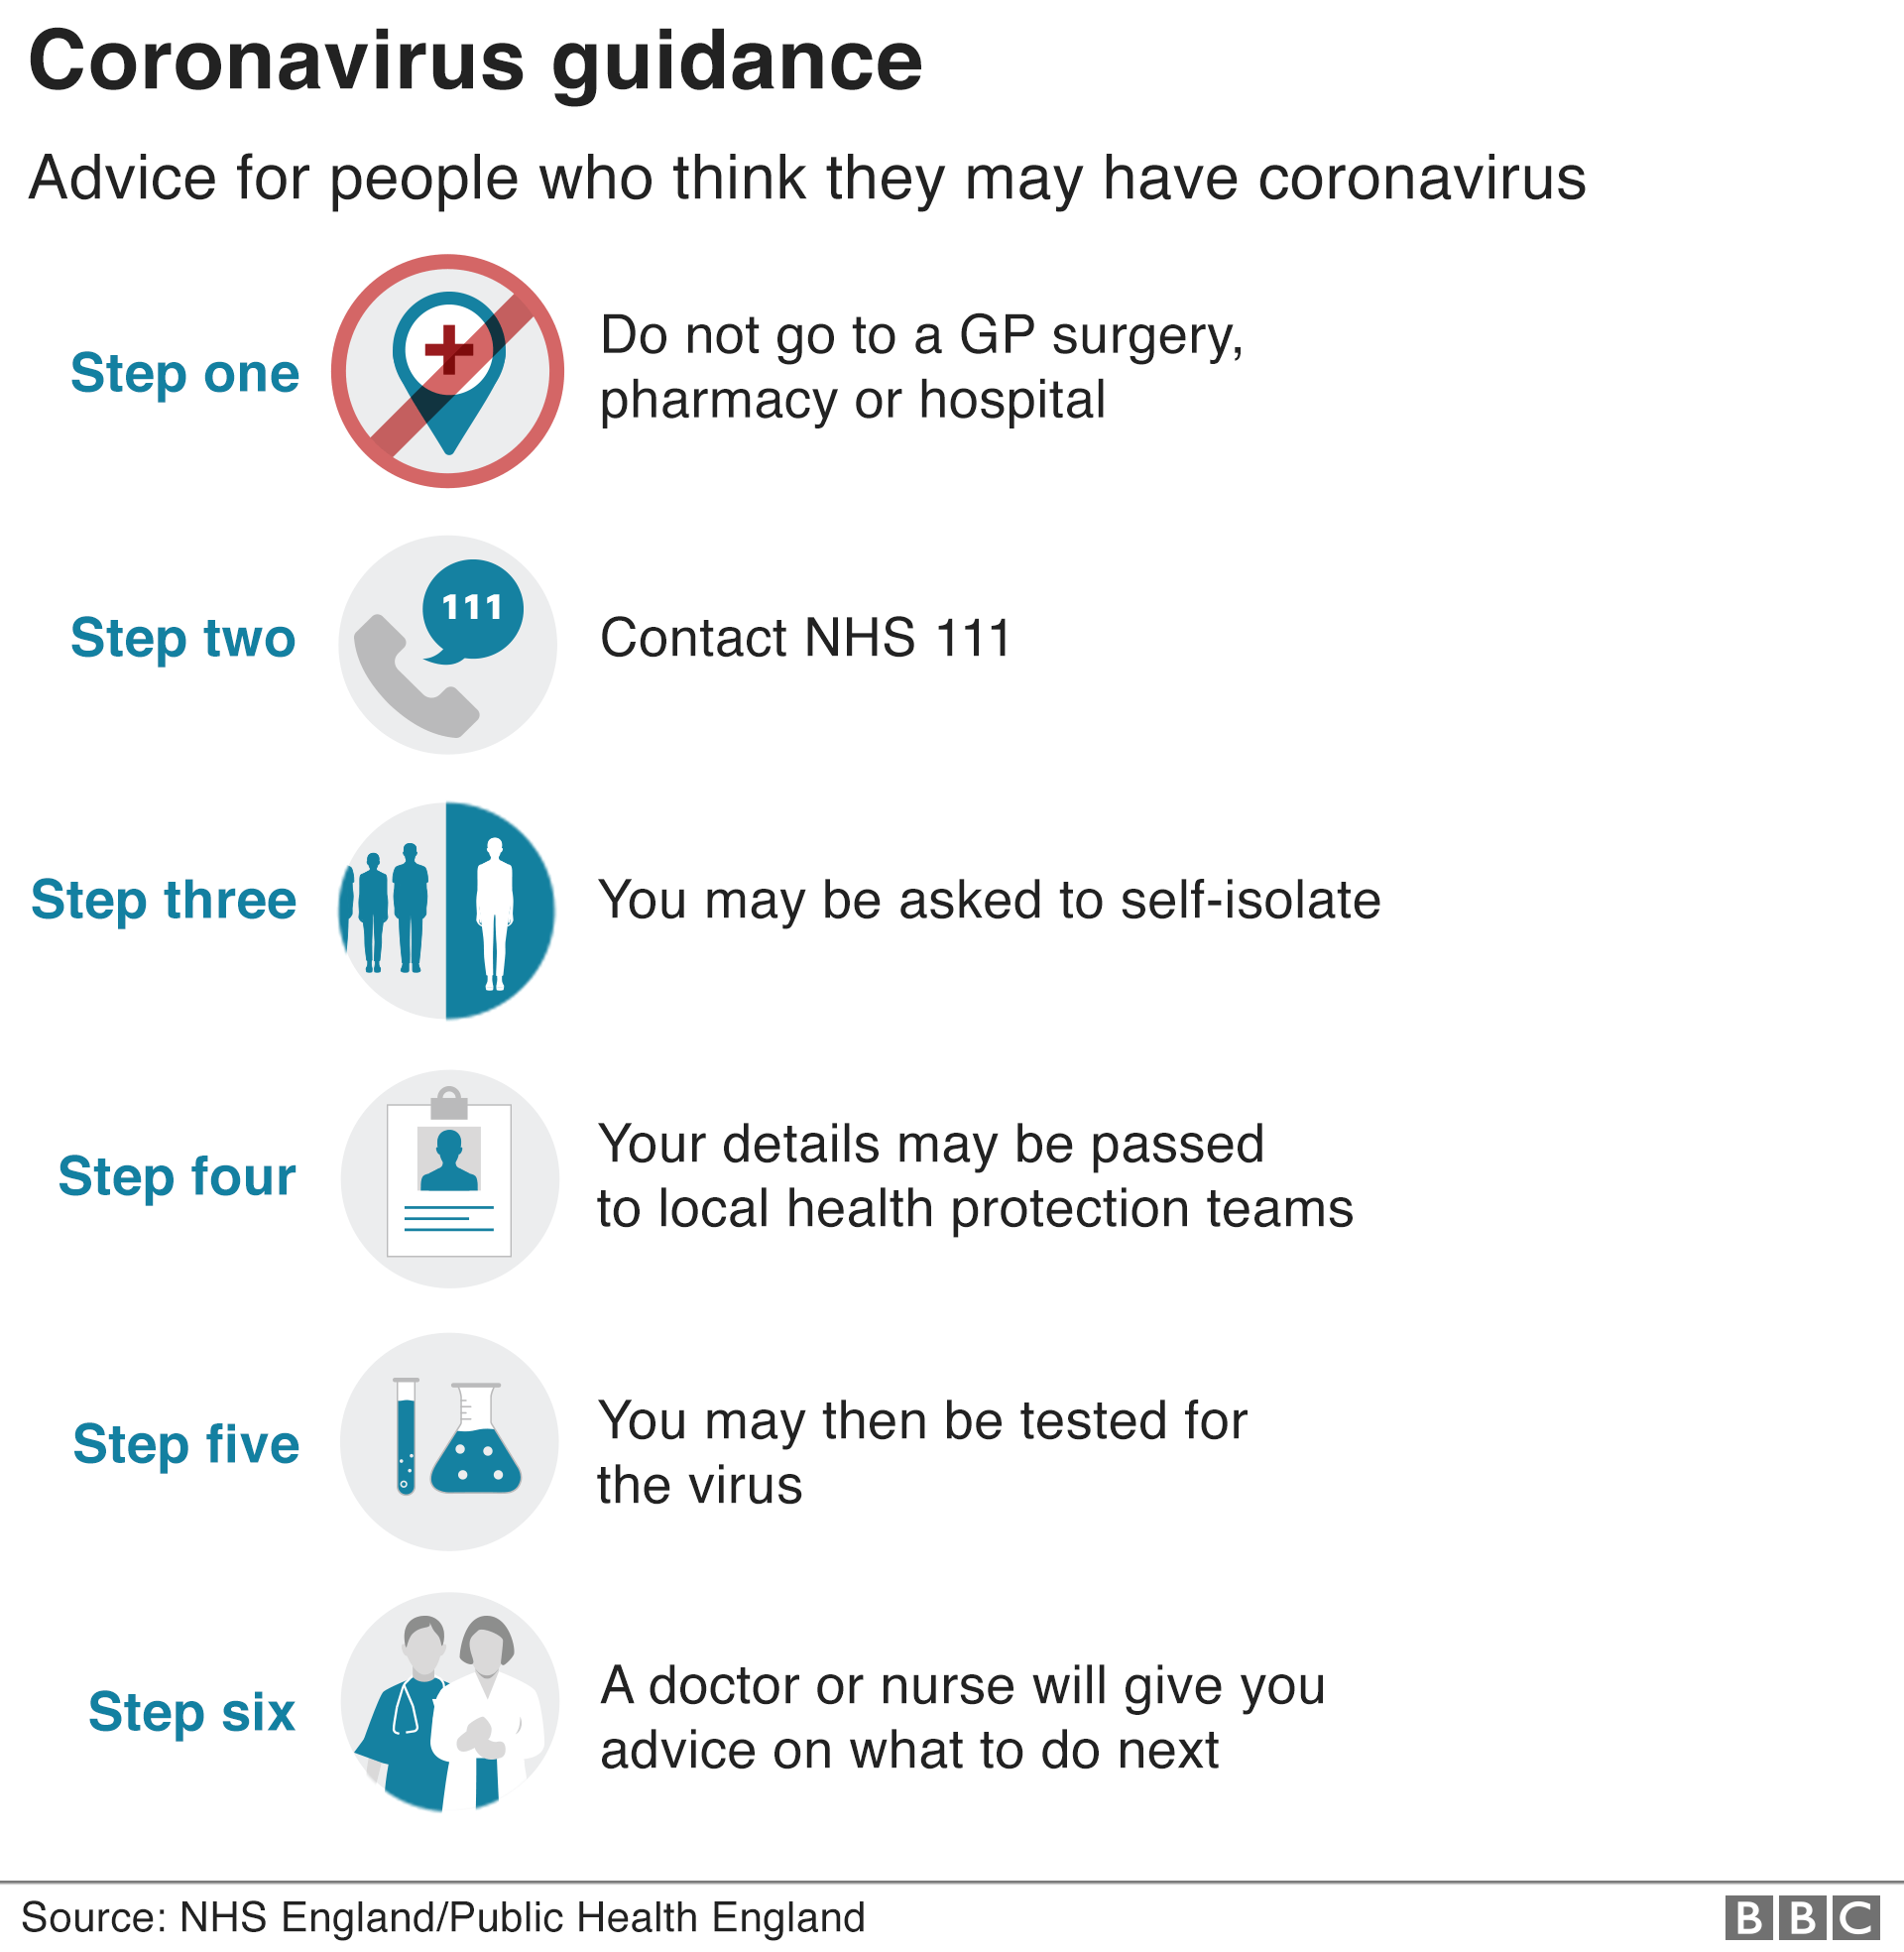 Graphic explaining the advice for people who think they may have coronavirus: 1) Do not go to a GP surgery, pharmacy or hospital. 2) Contact NHS 111. 3) You may be asked to self-isolate. 4) Your details may be passed to local health protection teams. 5) You may then be tested for the virus. 6) A doctor or nurse will give advice on what to do next.